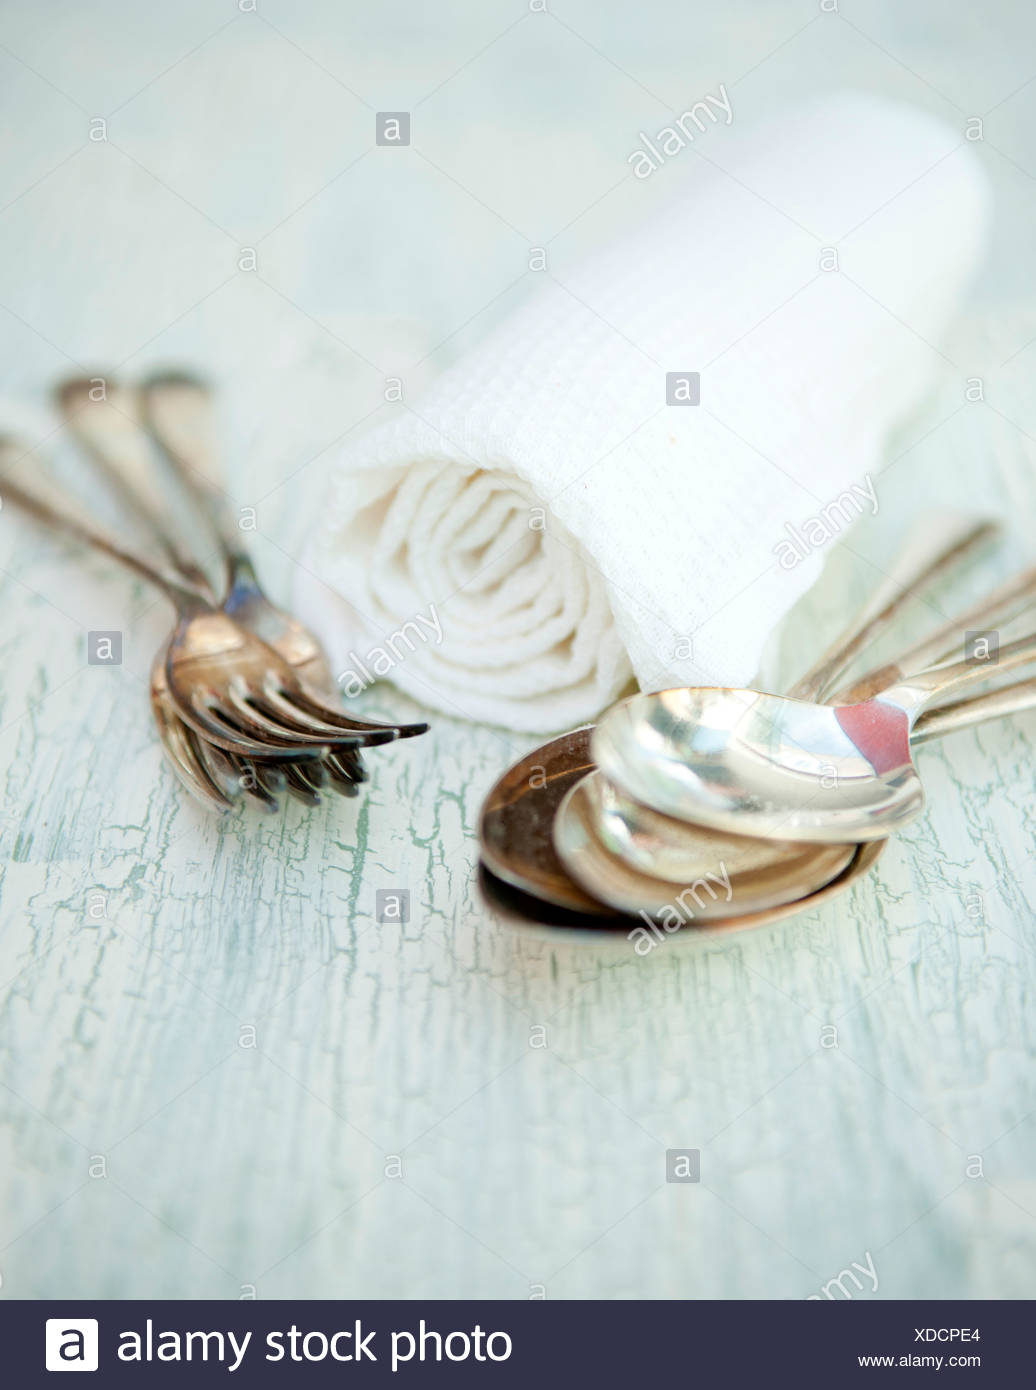 Cutlery and napkins - Stock Image